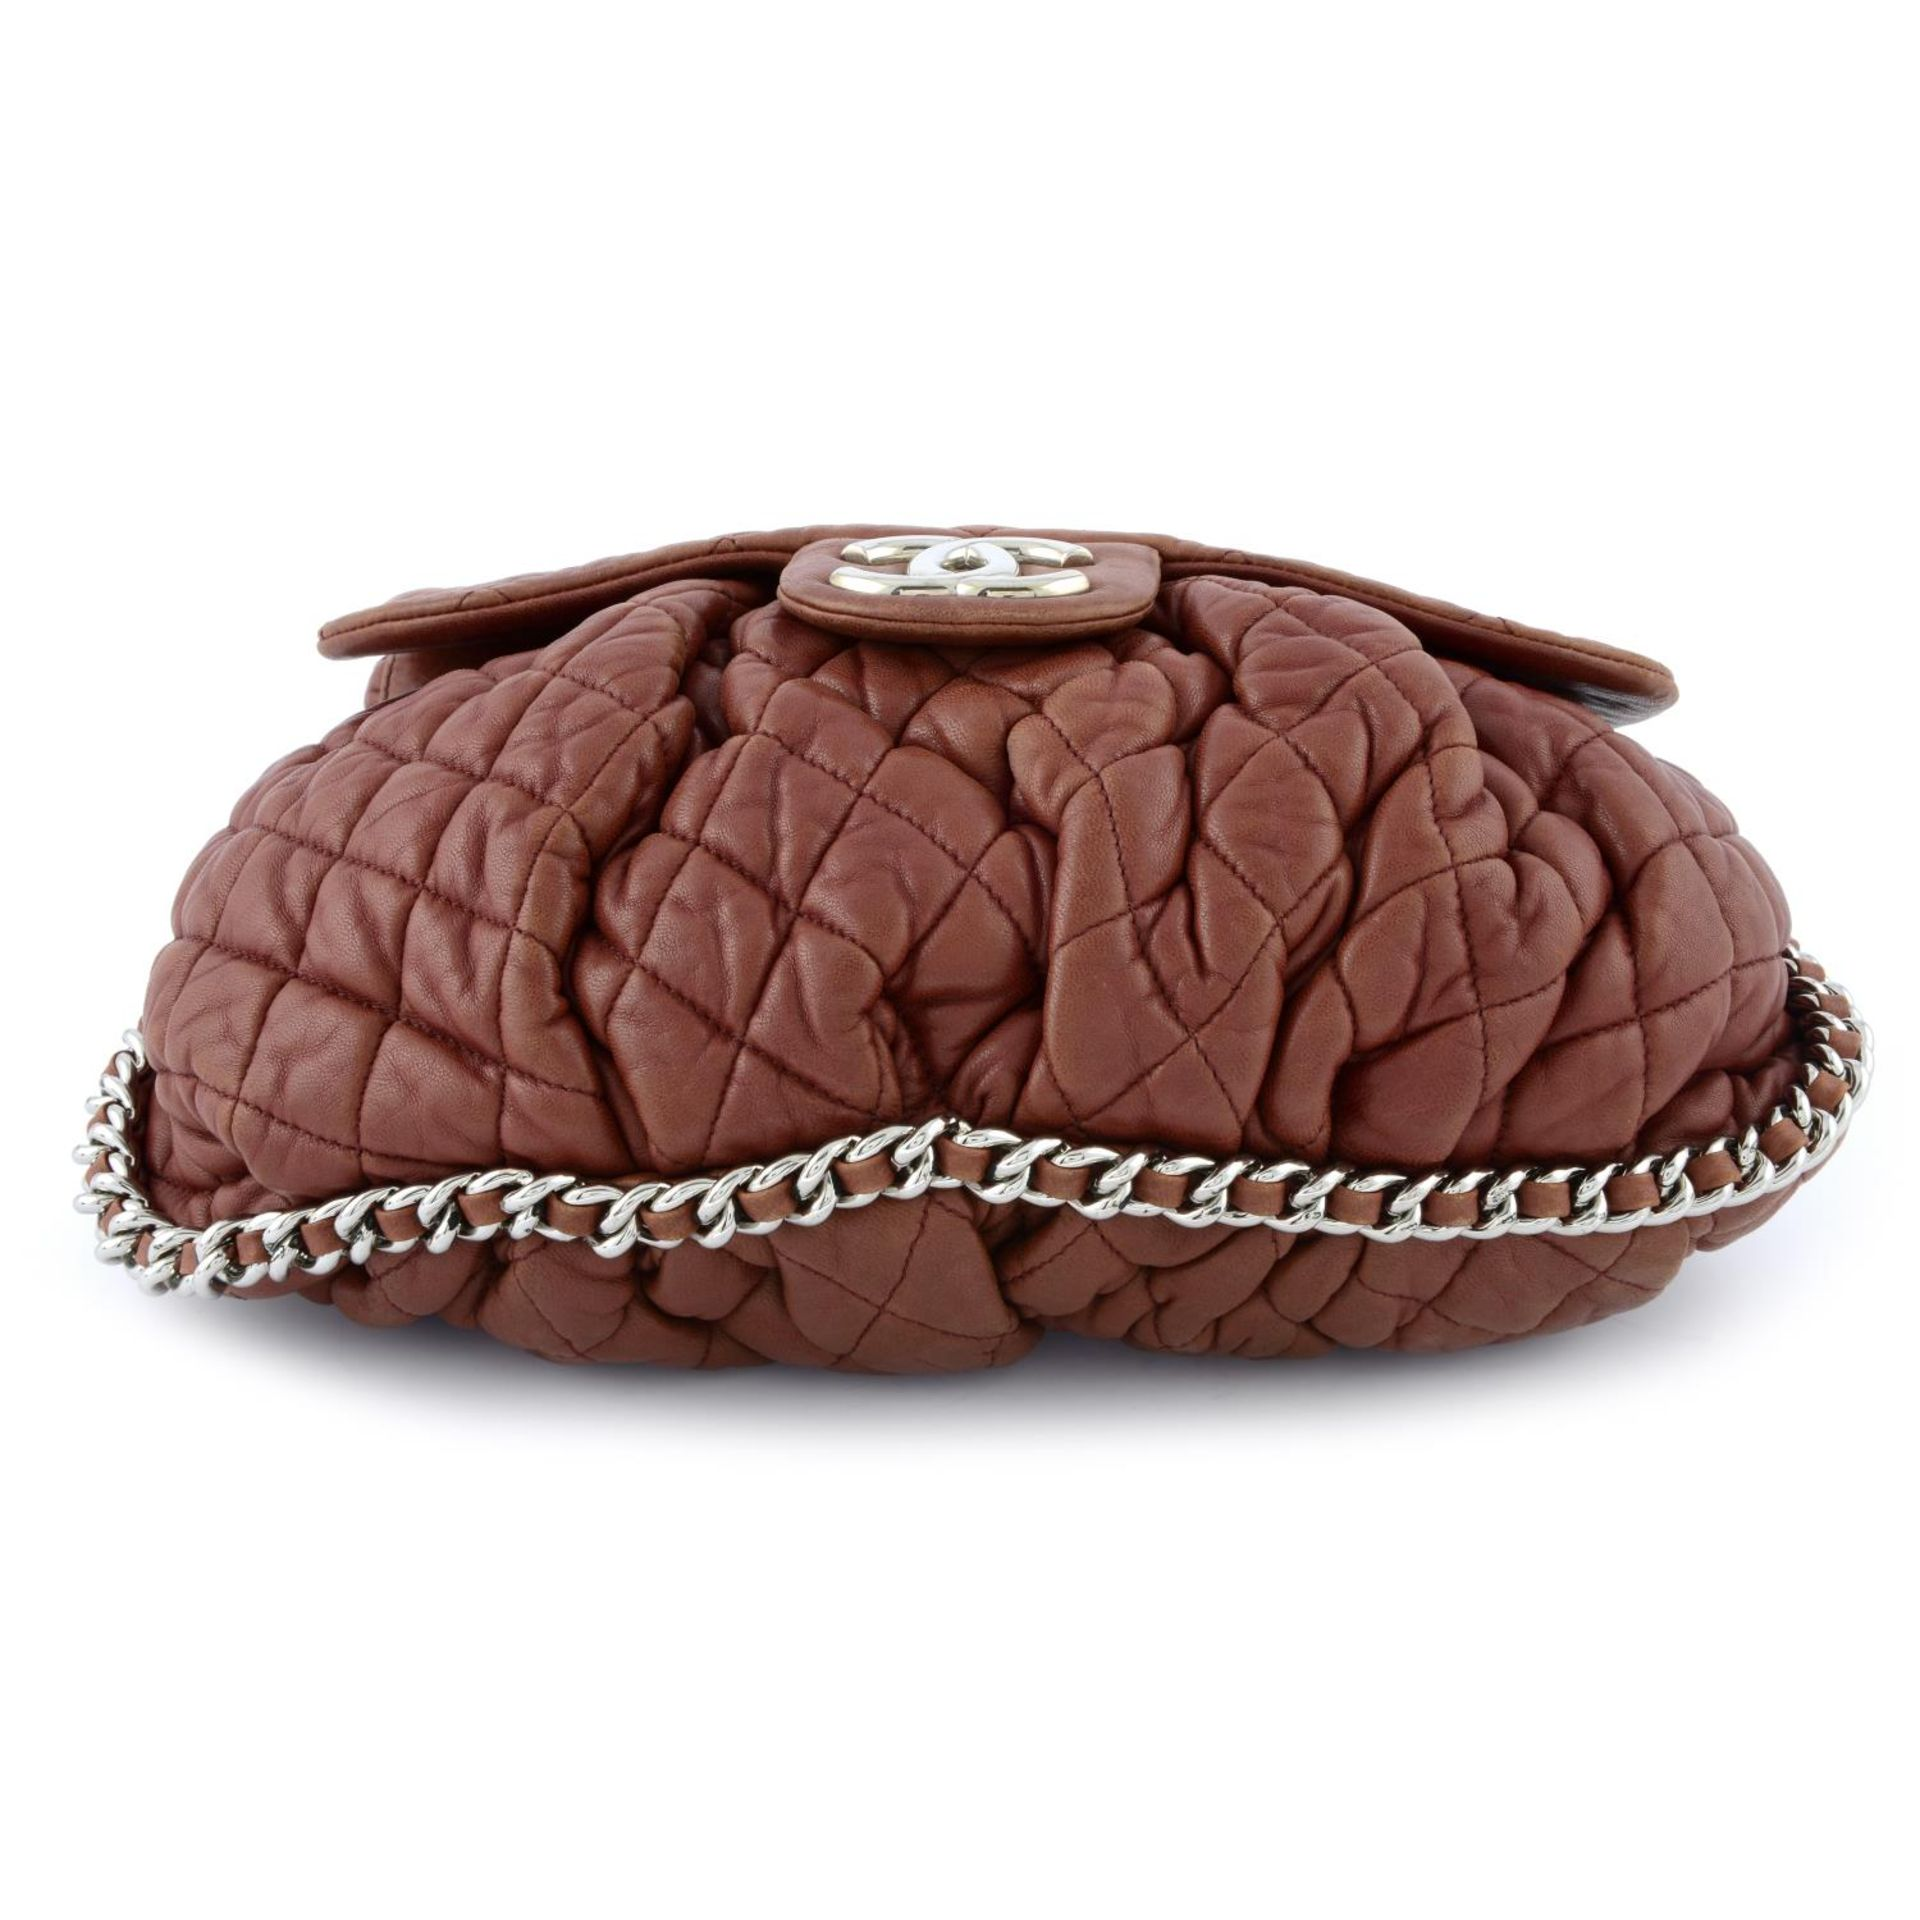 CHANEL - a quilted lambskin leather chain around handbag. - Image 4 of 4